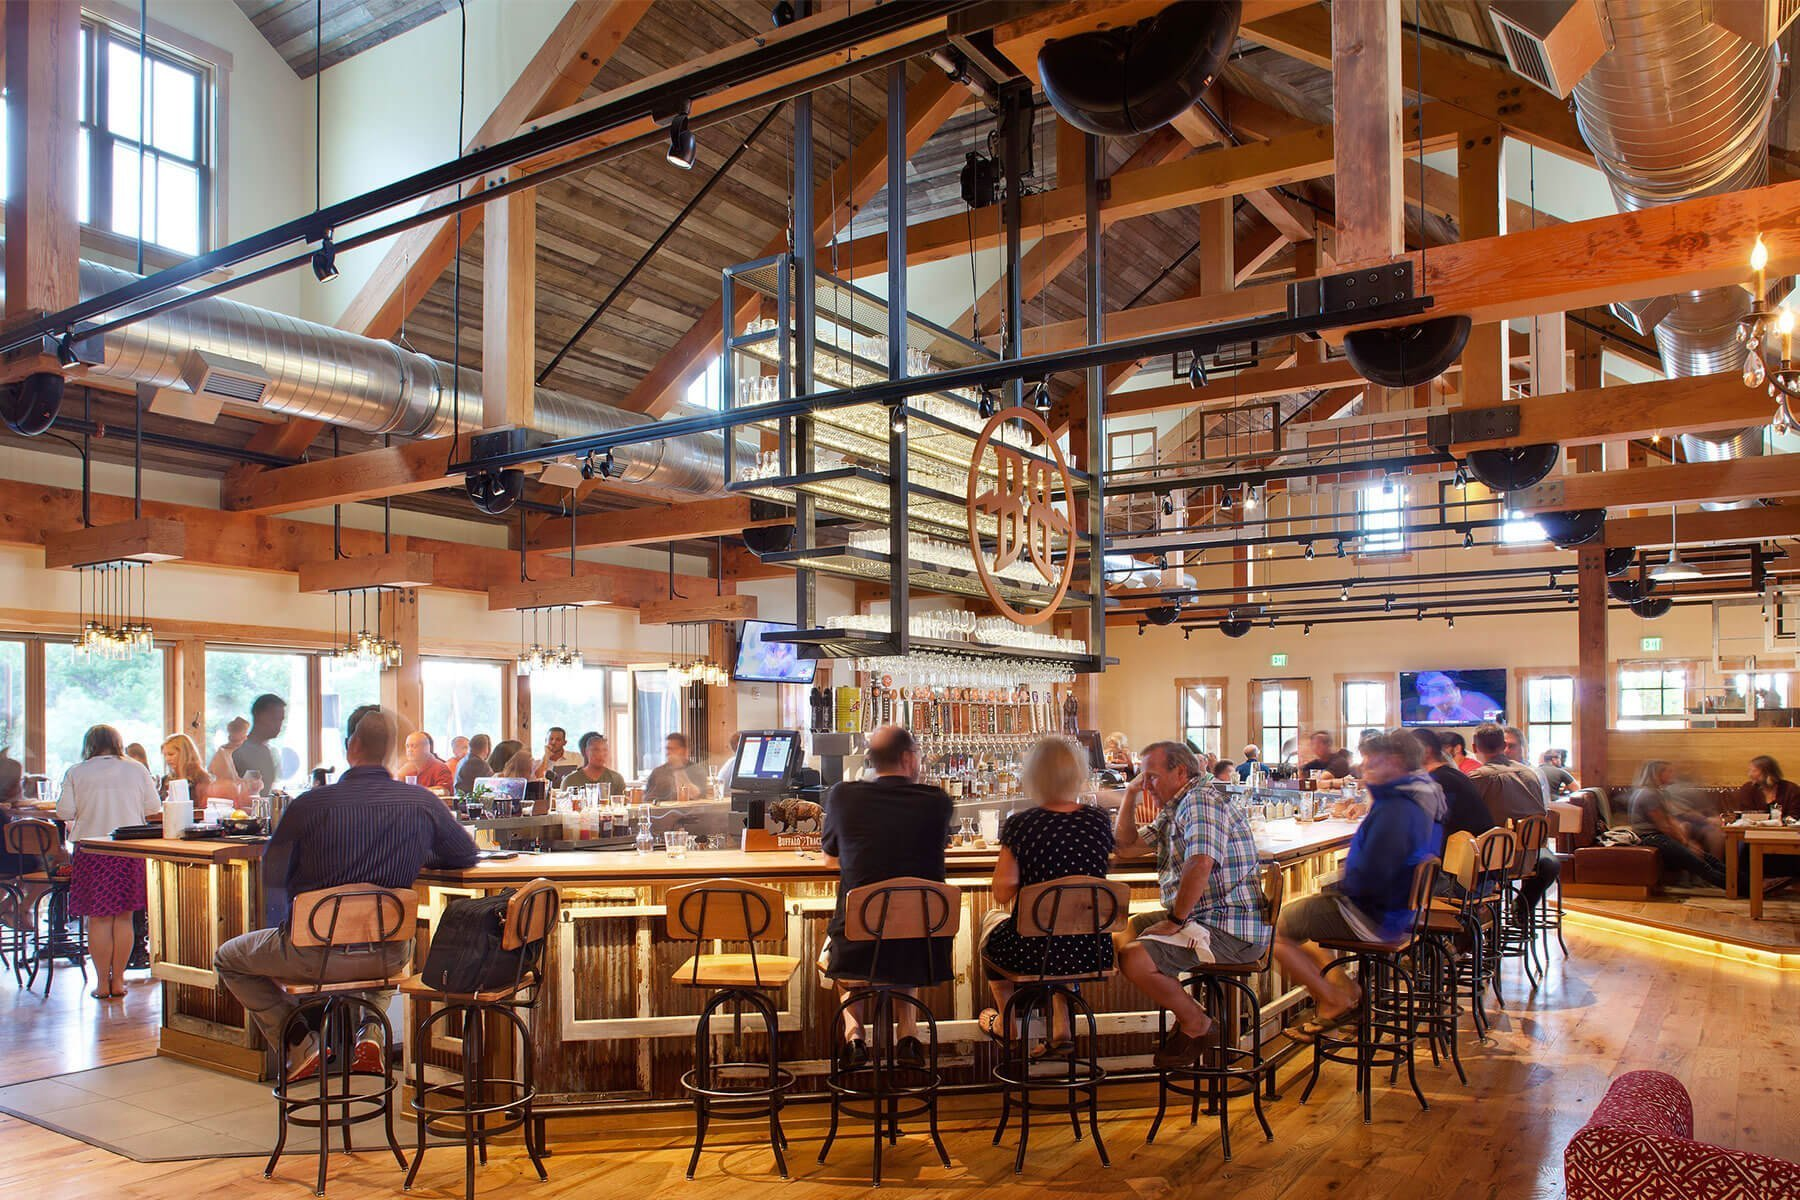 Inside the Breckenridge Brewery tasting room in Littleton, Colorado